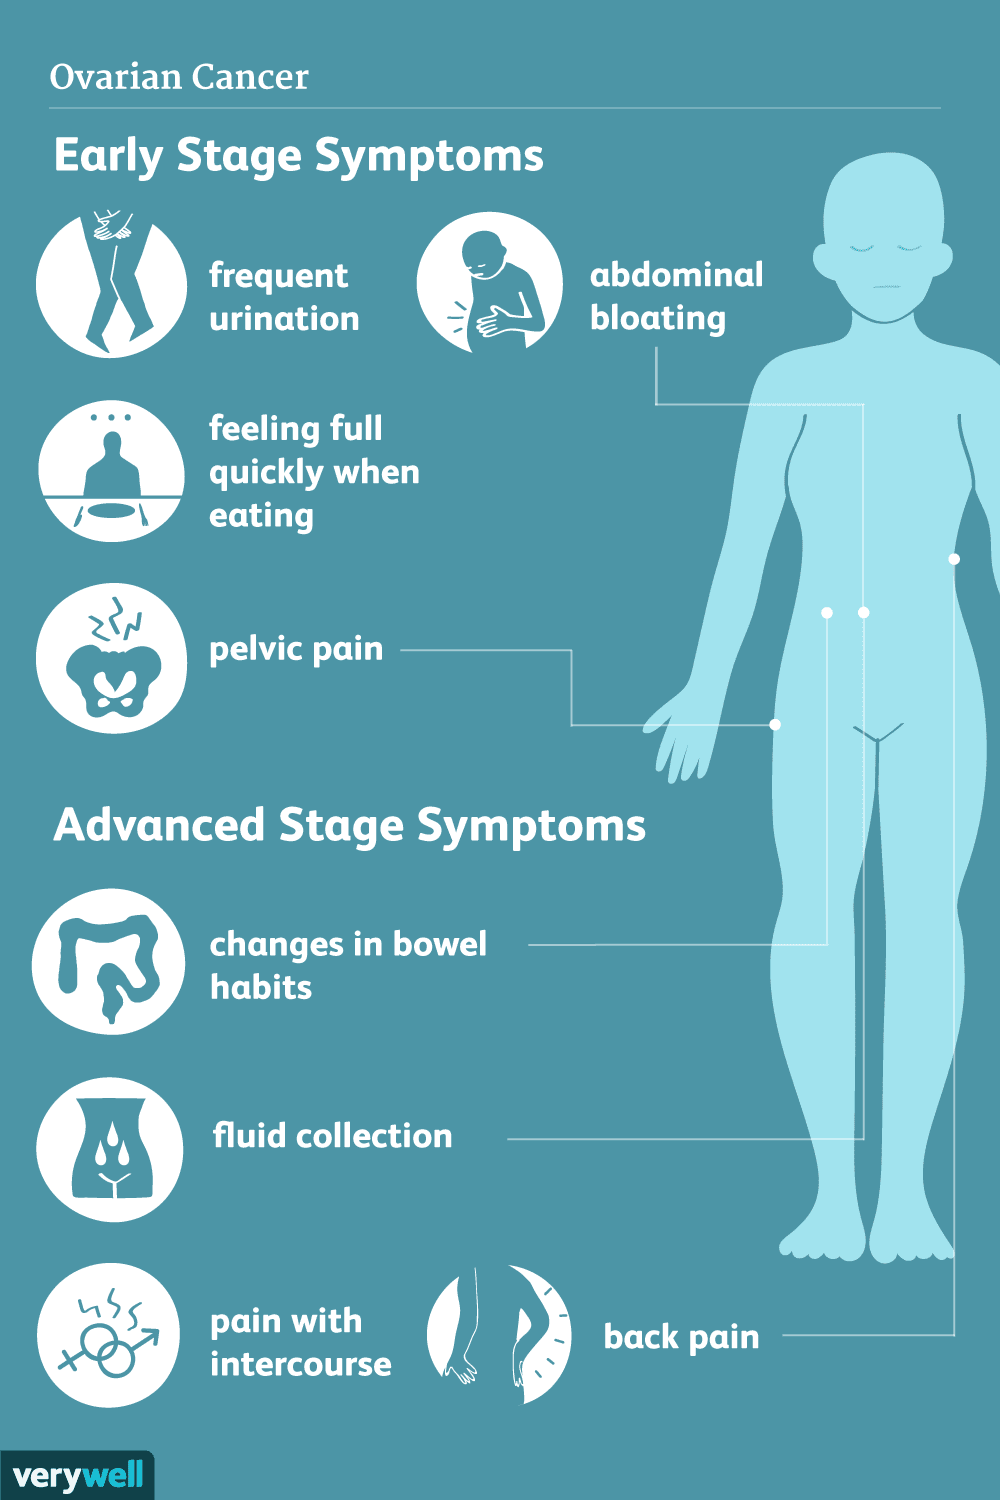 ovarian cancer: signs, symptoms, and complications